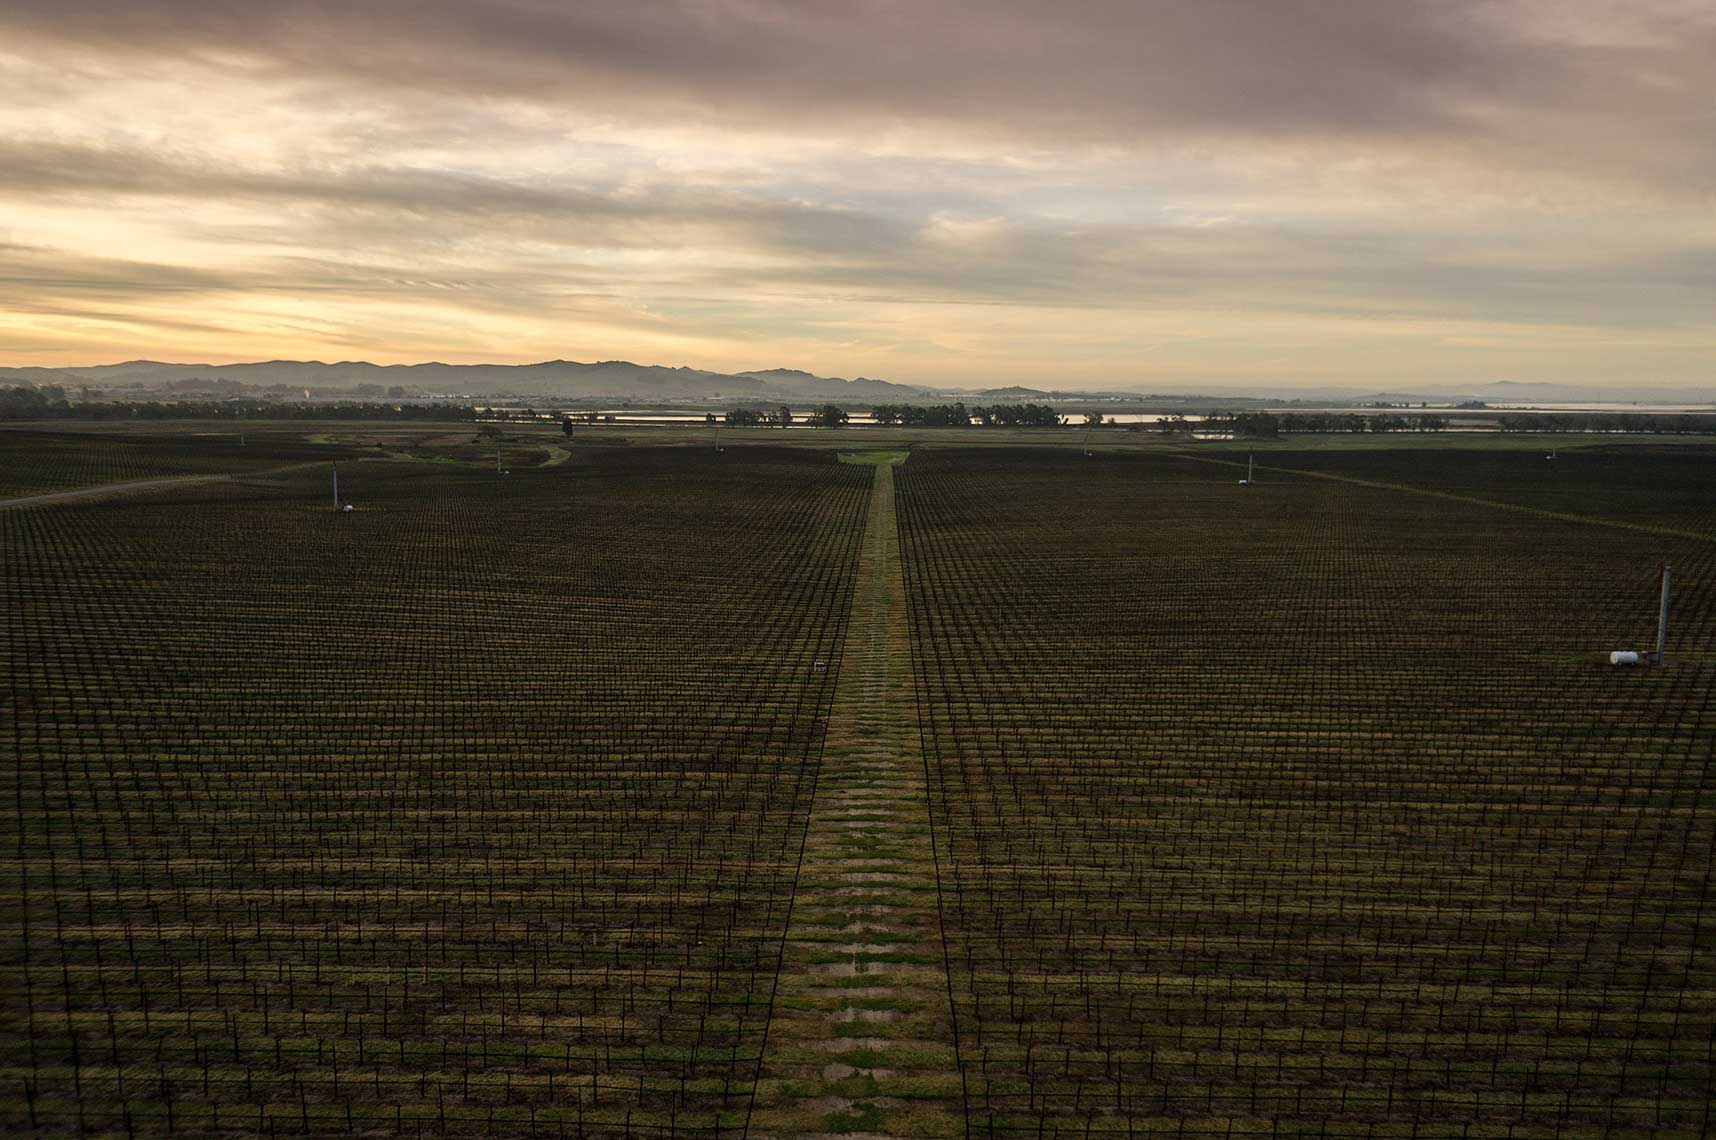 Commercial kite aerial photography by Jason Tinacci, Napa, CA